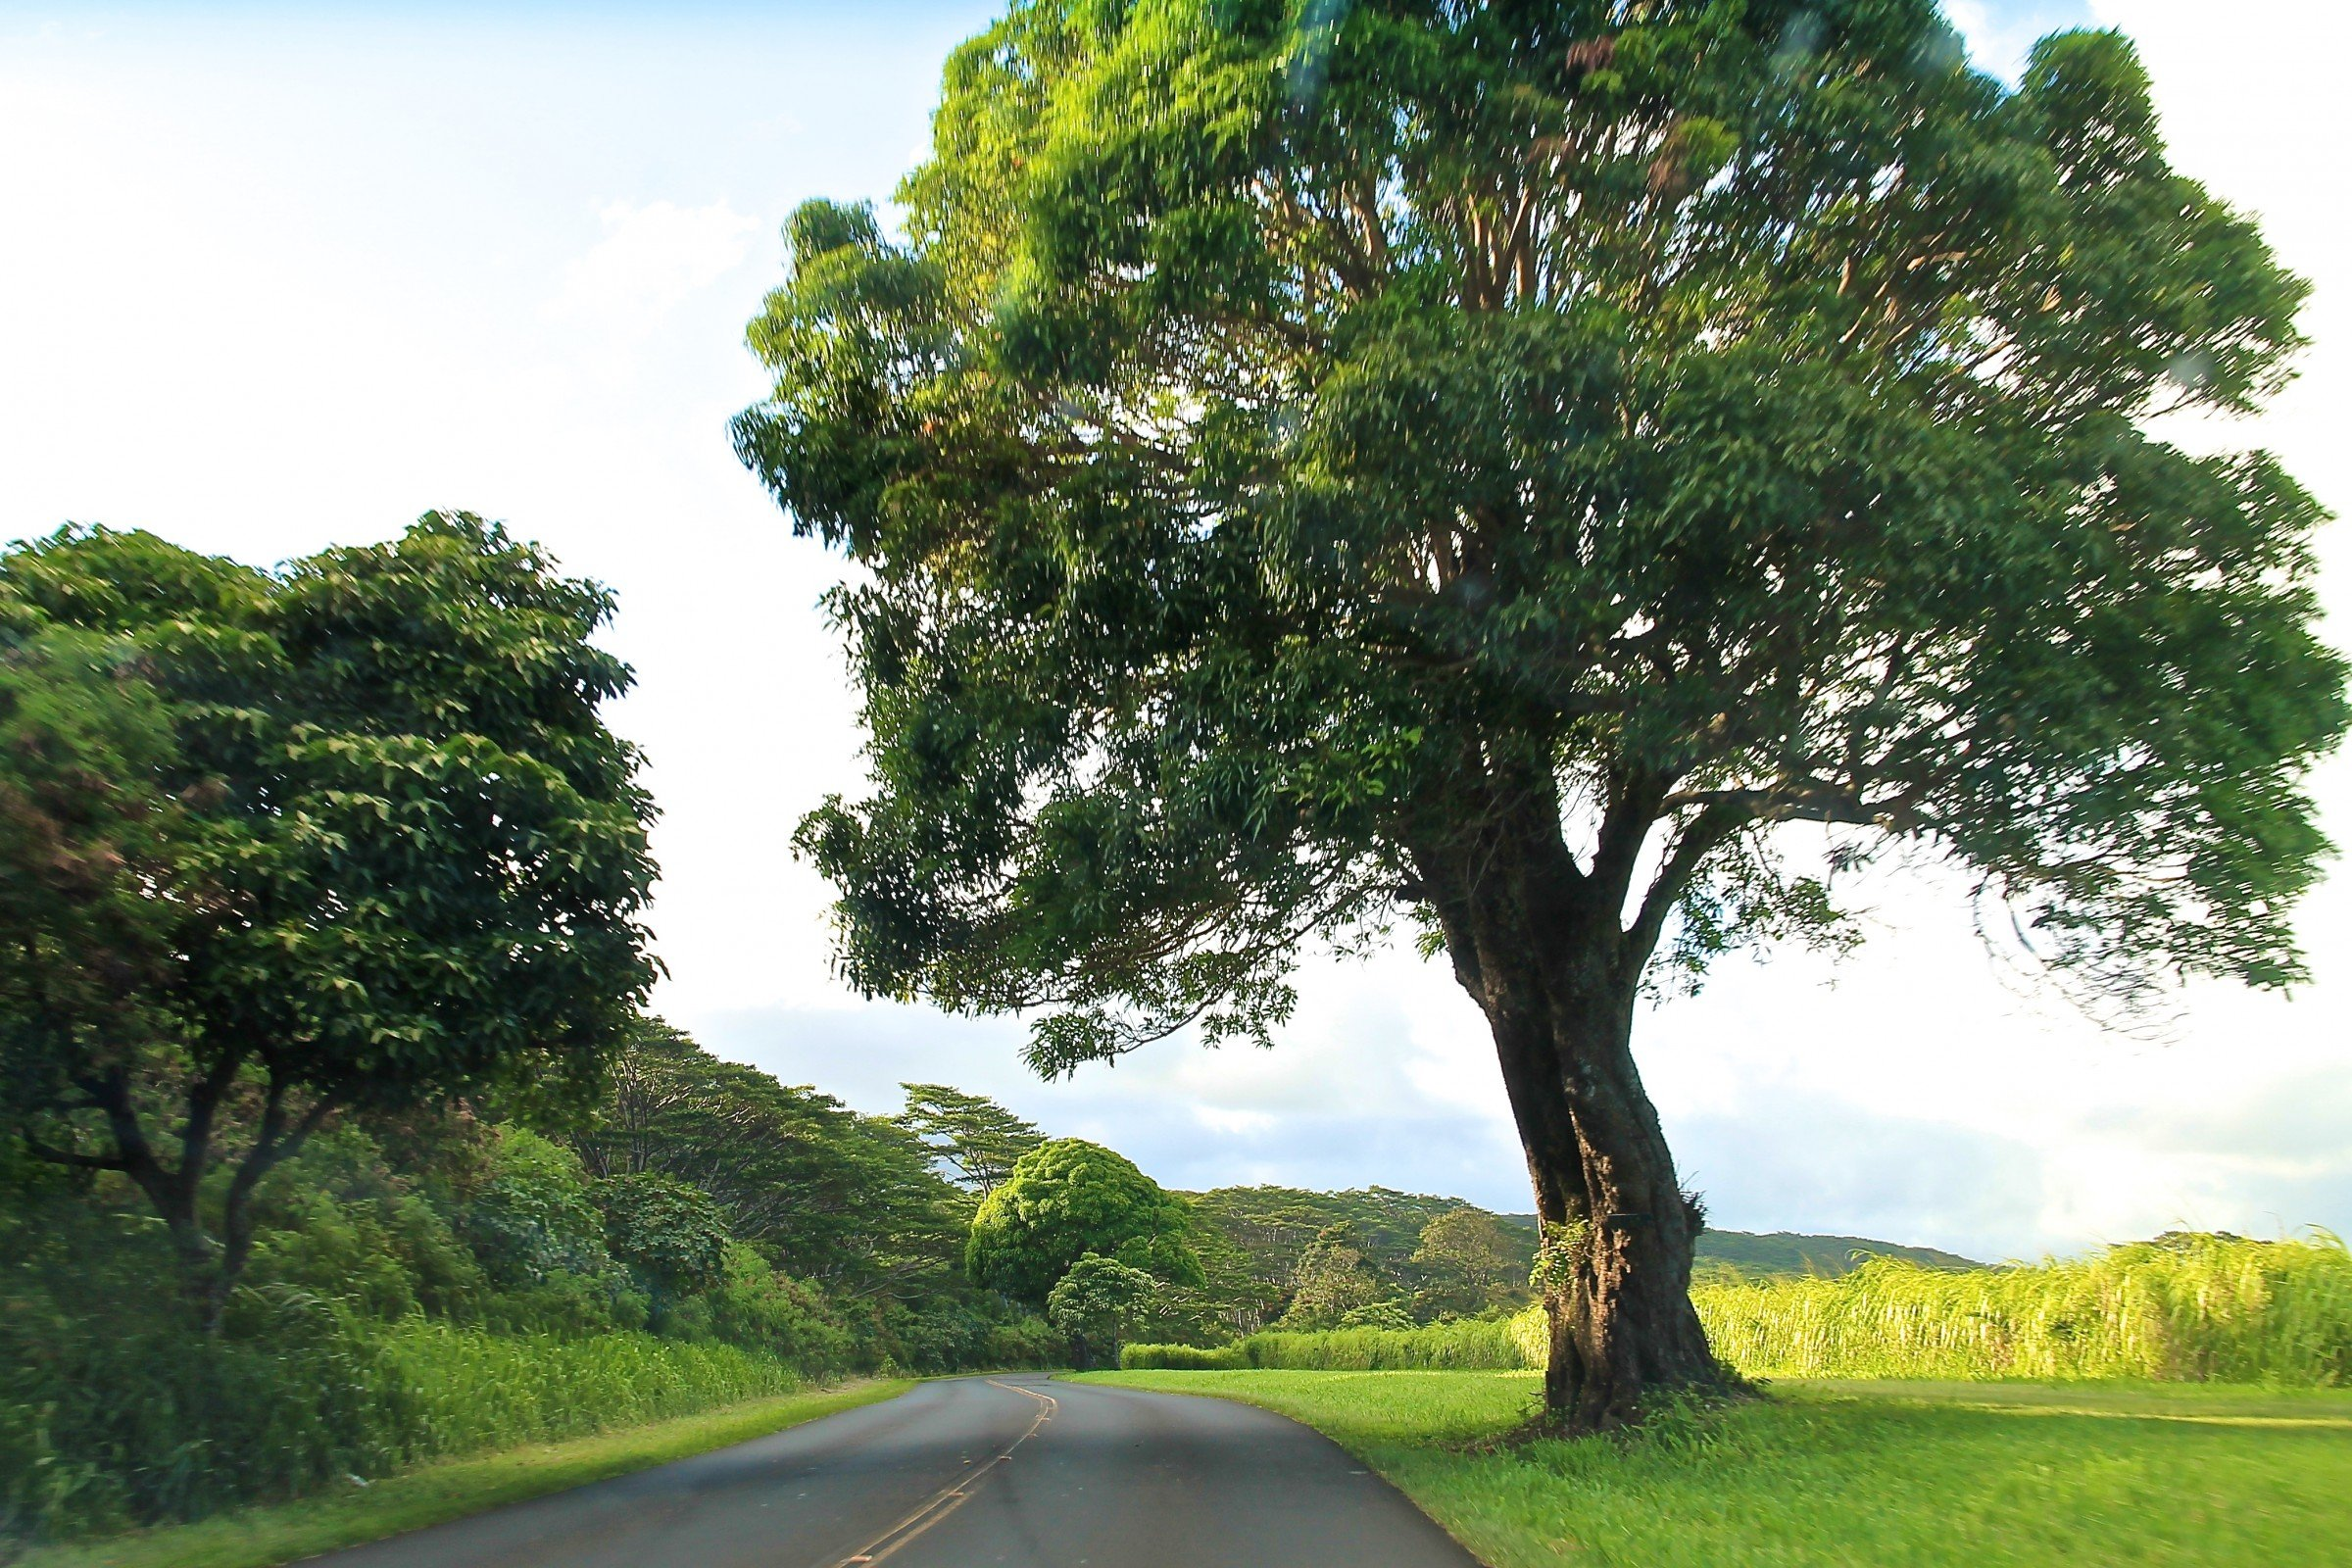 free stock photo of road by large tree